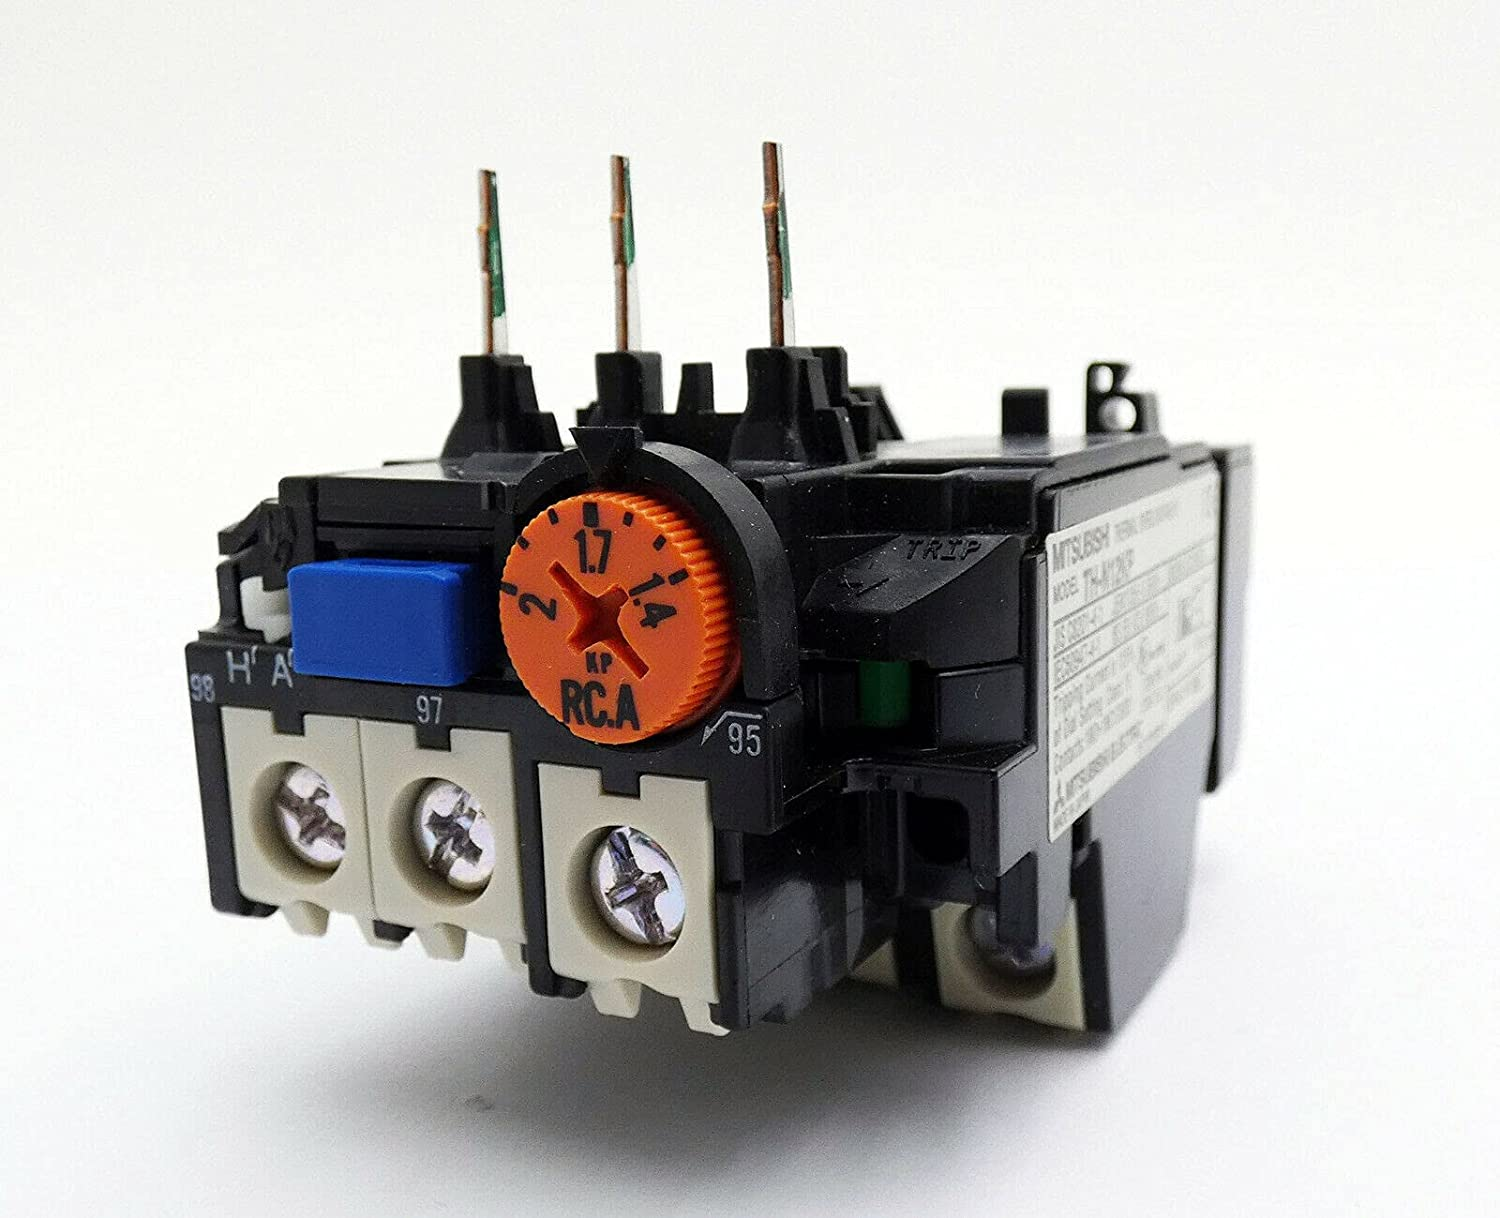 TH-K12KP Thermal Max 44% OFF Overload 25% OFF 2.8-4.4A Relay